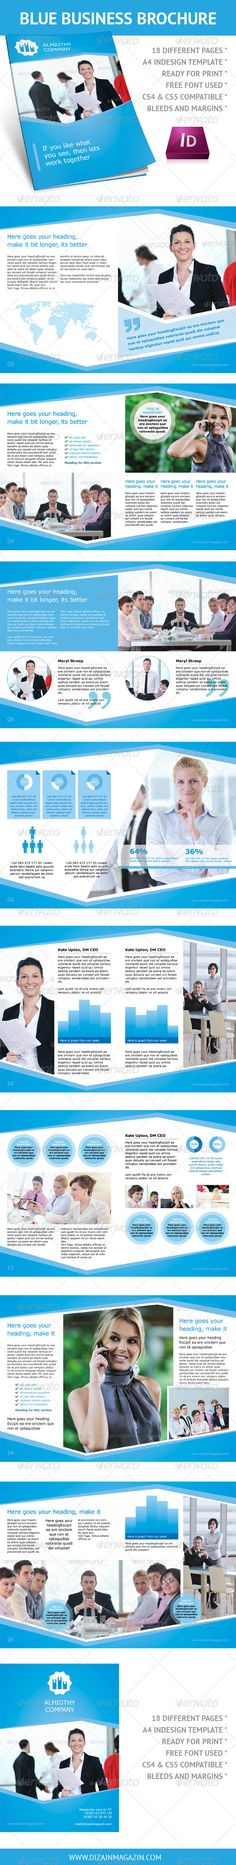 Clean Blue Business Brochure A4 InDesign Template - GraphicRiver Item for Sale